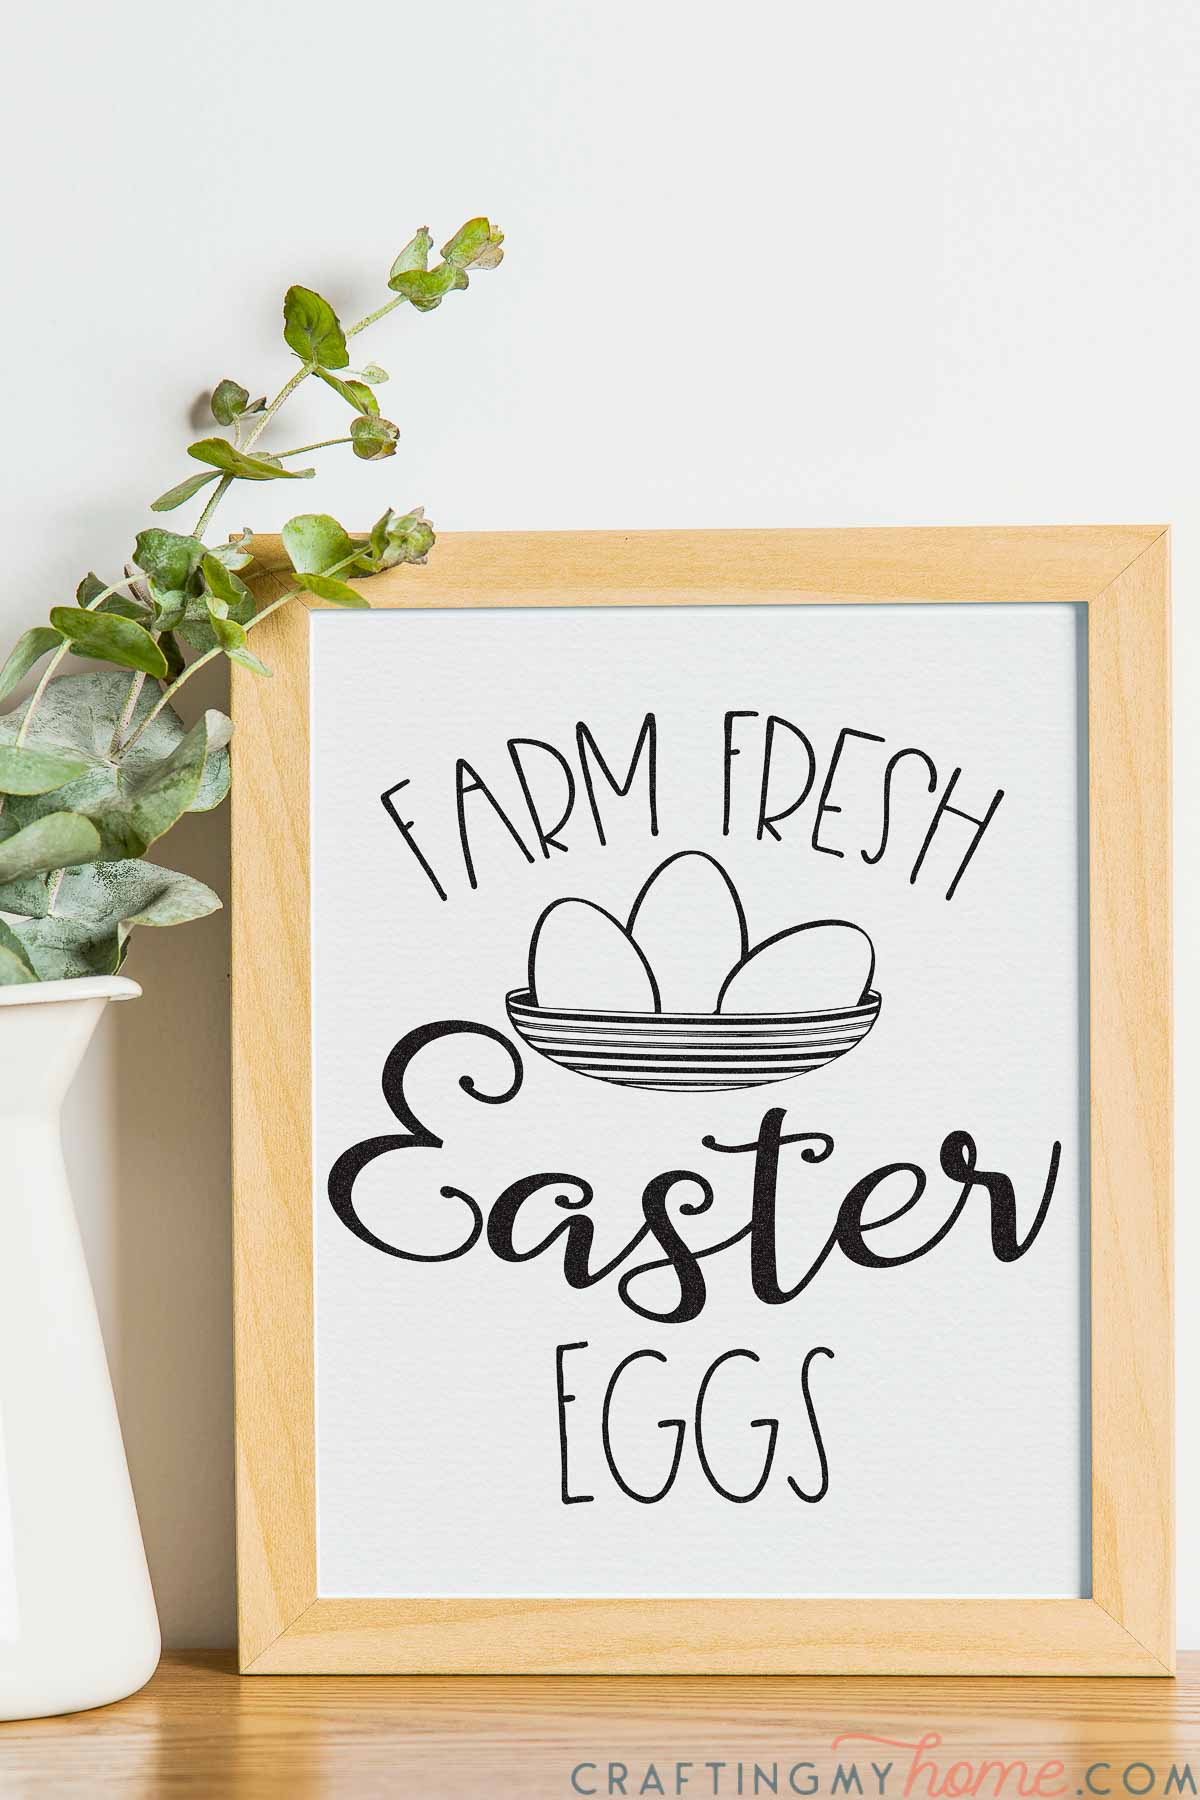 """Simple easter sign that says """"Farm Fresh Easter Eggs"""" with a sketch  of a bowl filled with 3 eggs in a picture frame."""